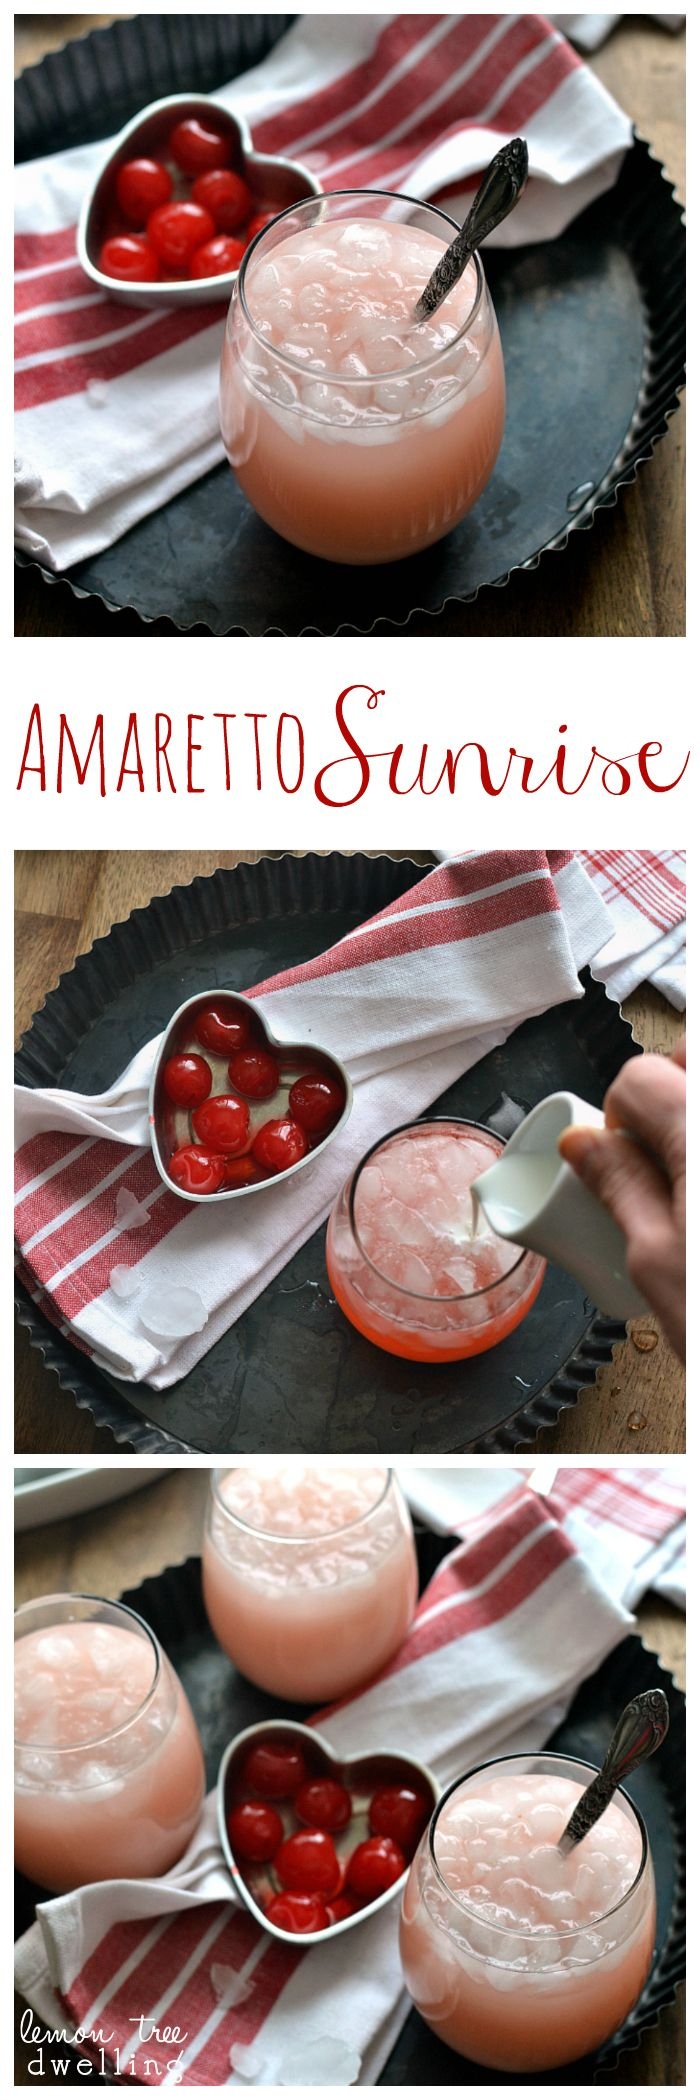 Amaretto Sunrise - a deliciously sweet cocktail made with amaretto, triple sec & grenadine!